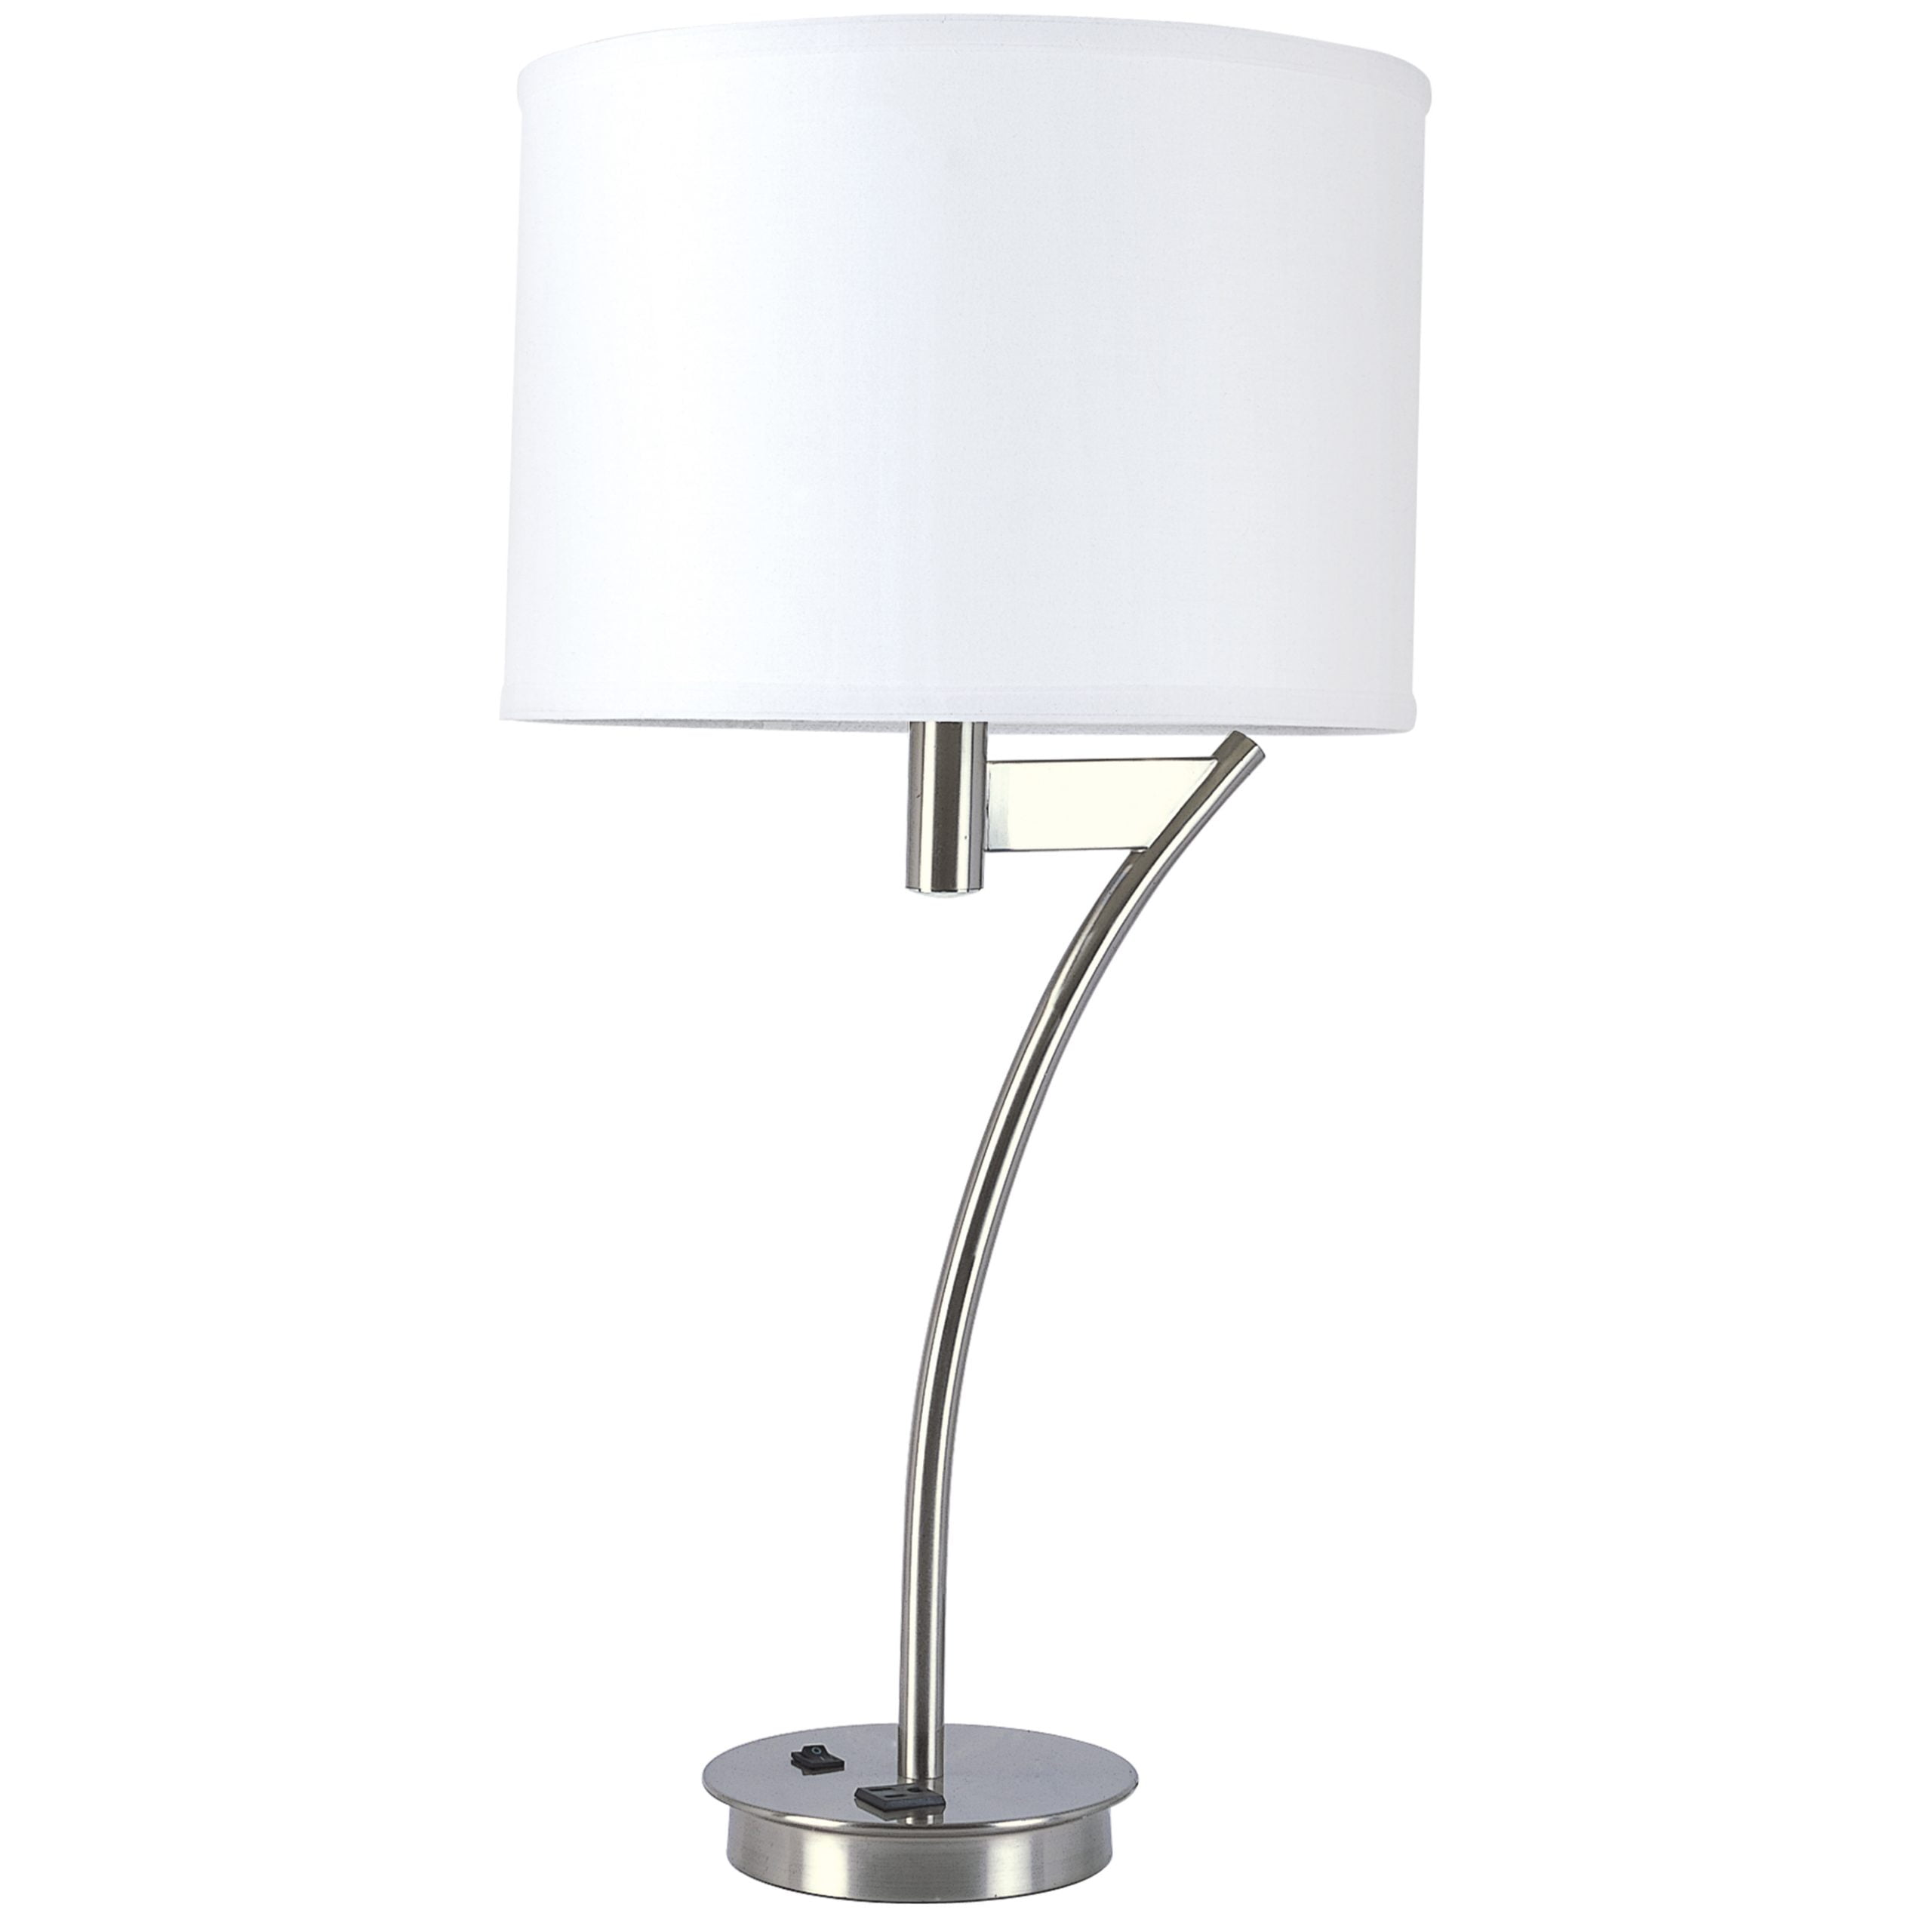 Corbel Single Table Lamp with 1 Outlet